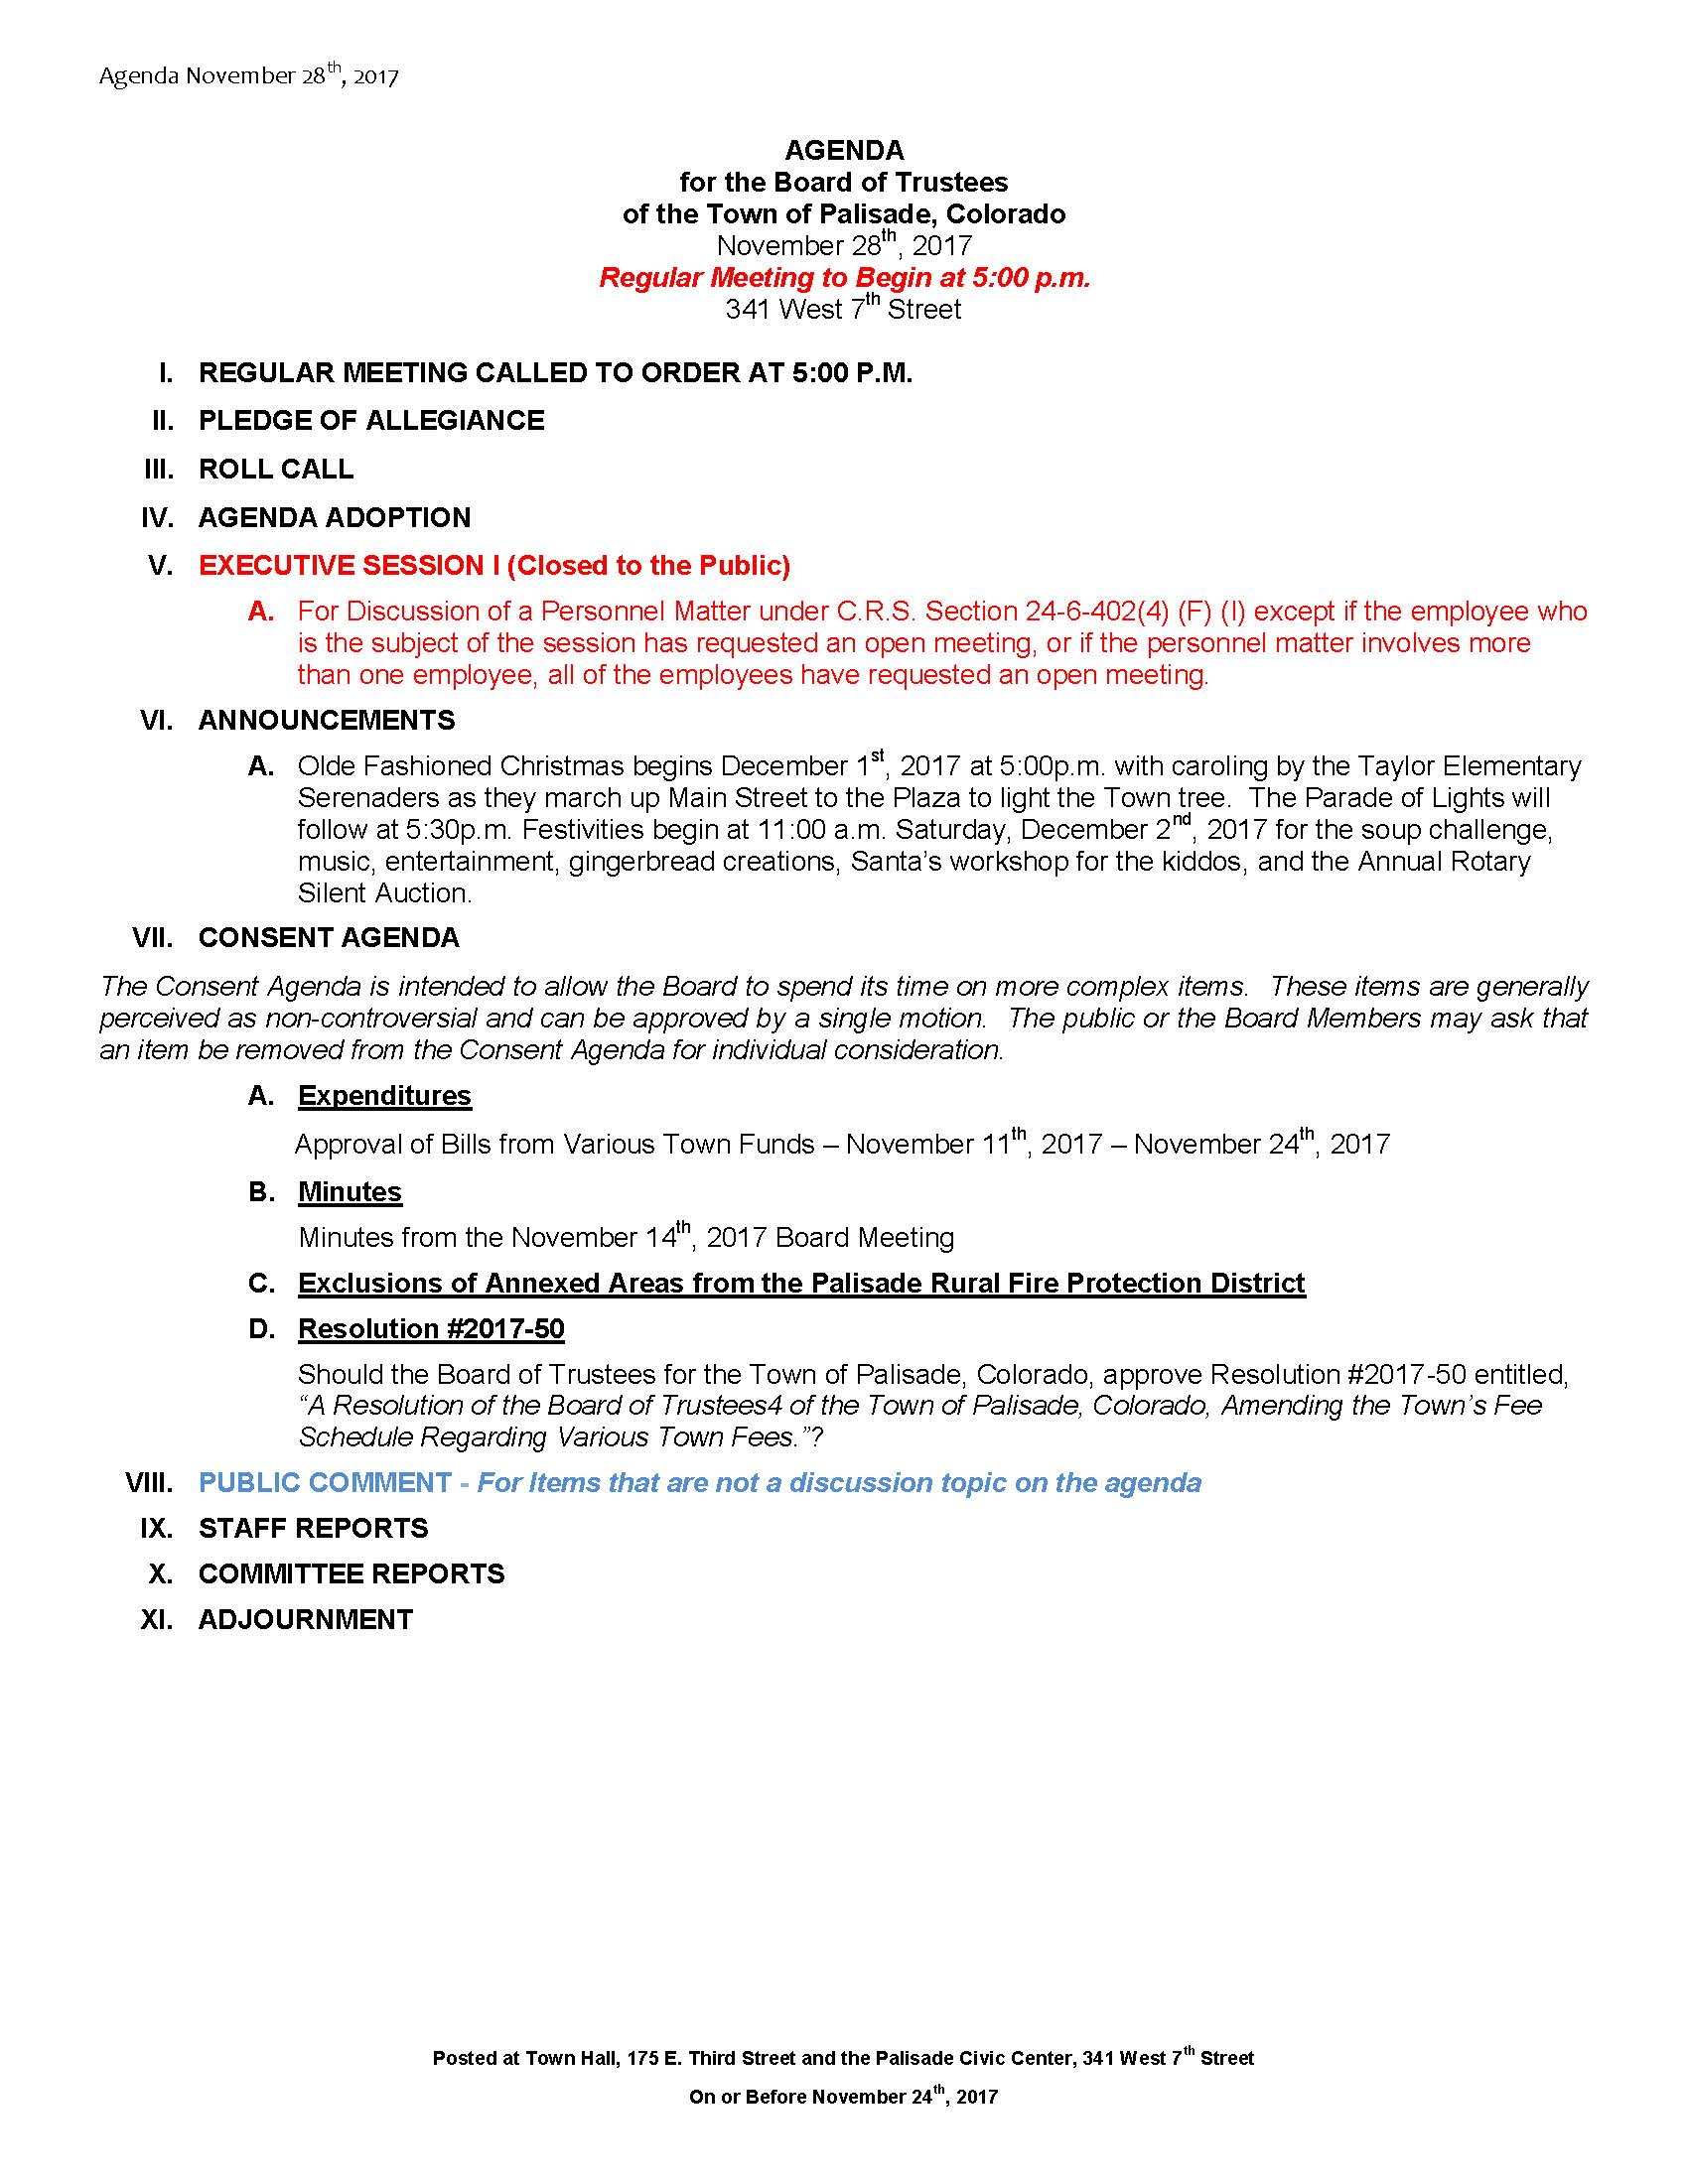 November 28th 2017 Board Meeting Agenda